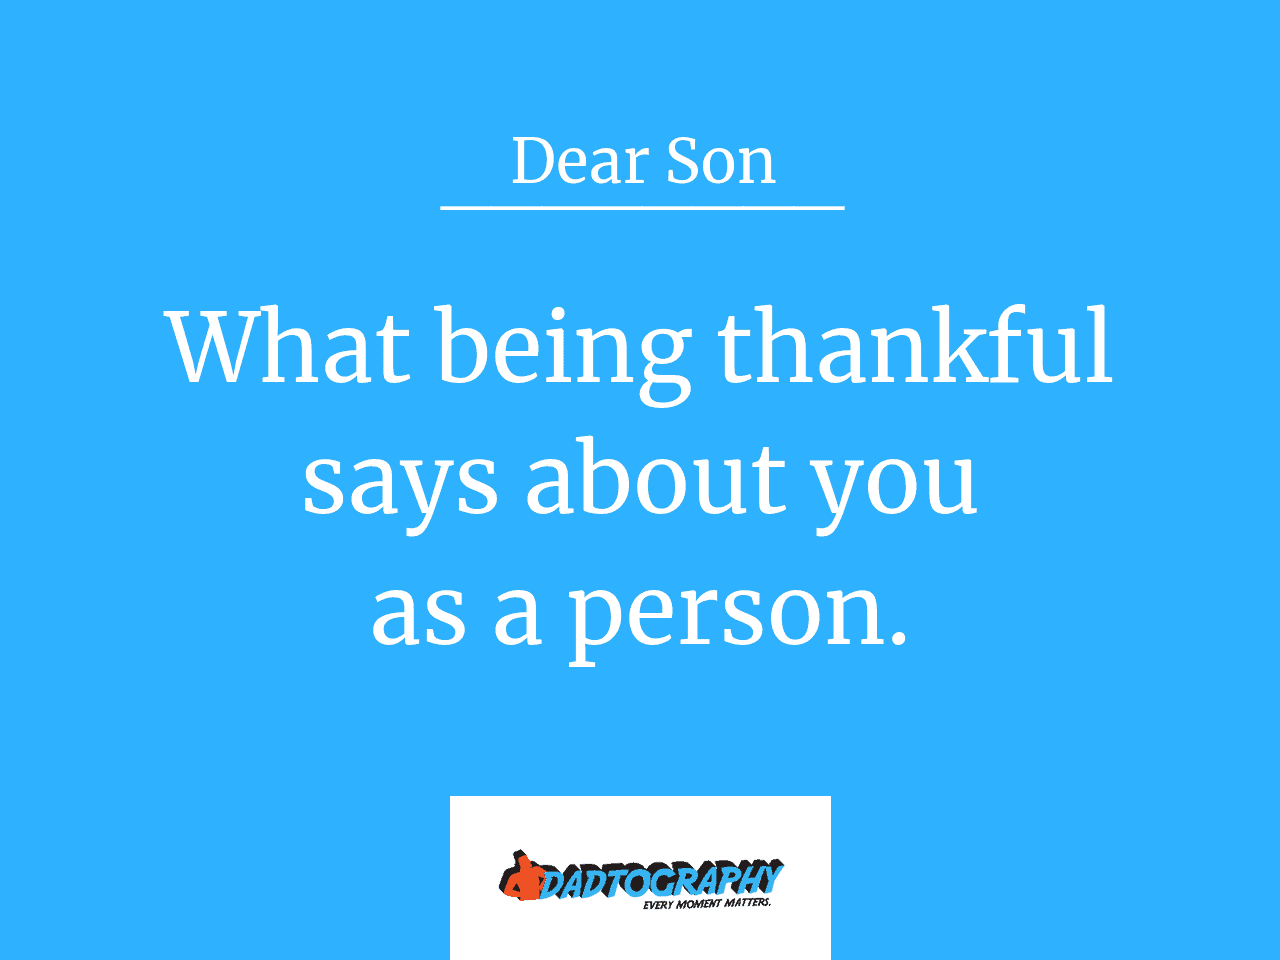 Dear Son - What Being Thankful Says About You